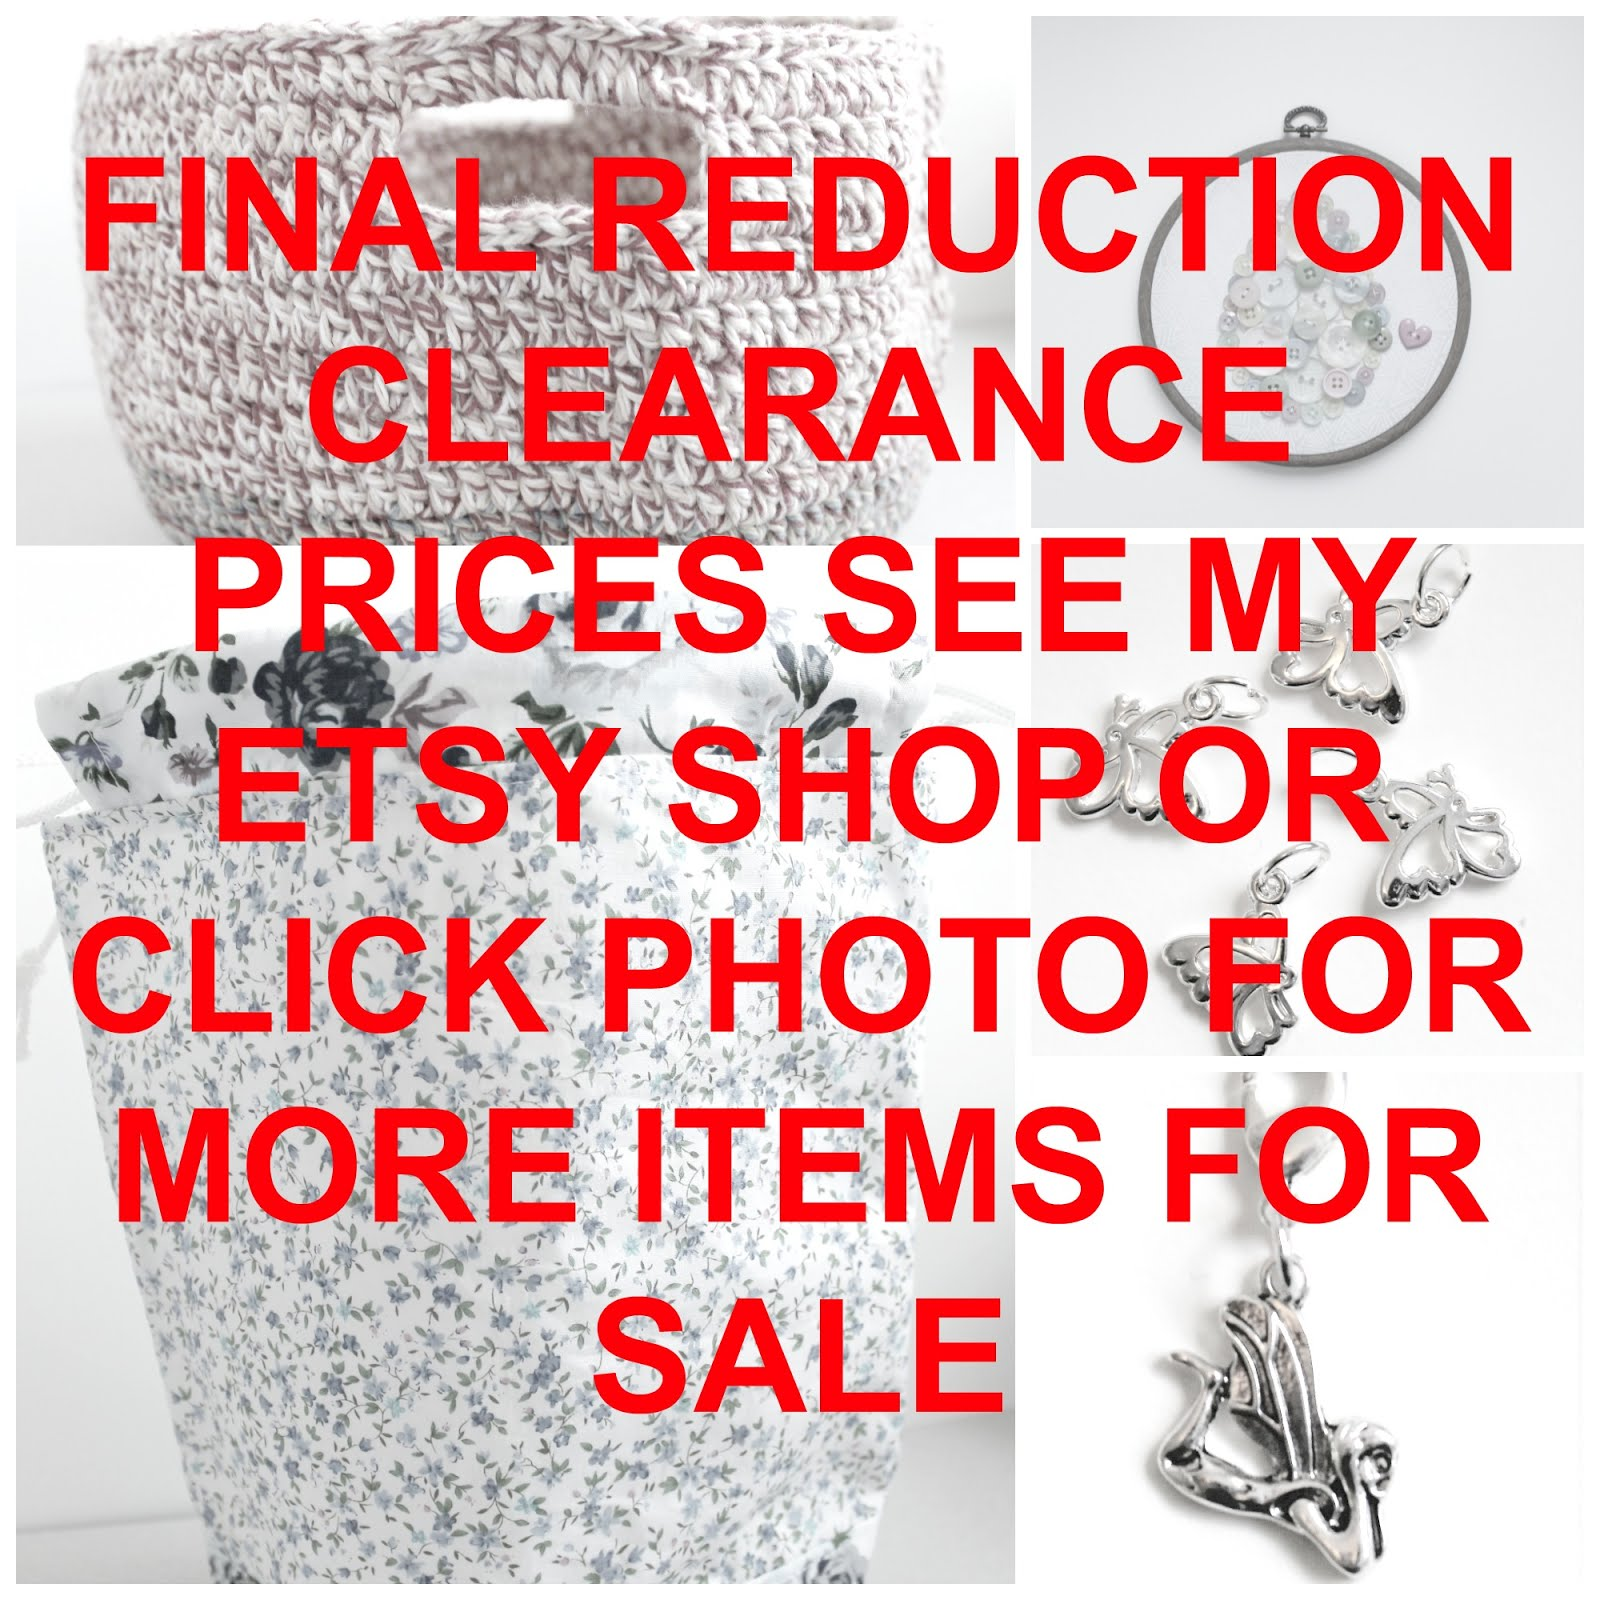 Sale - click photo to go to sale items post